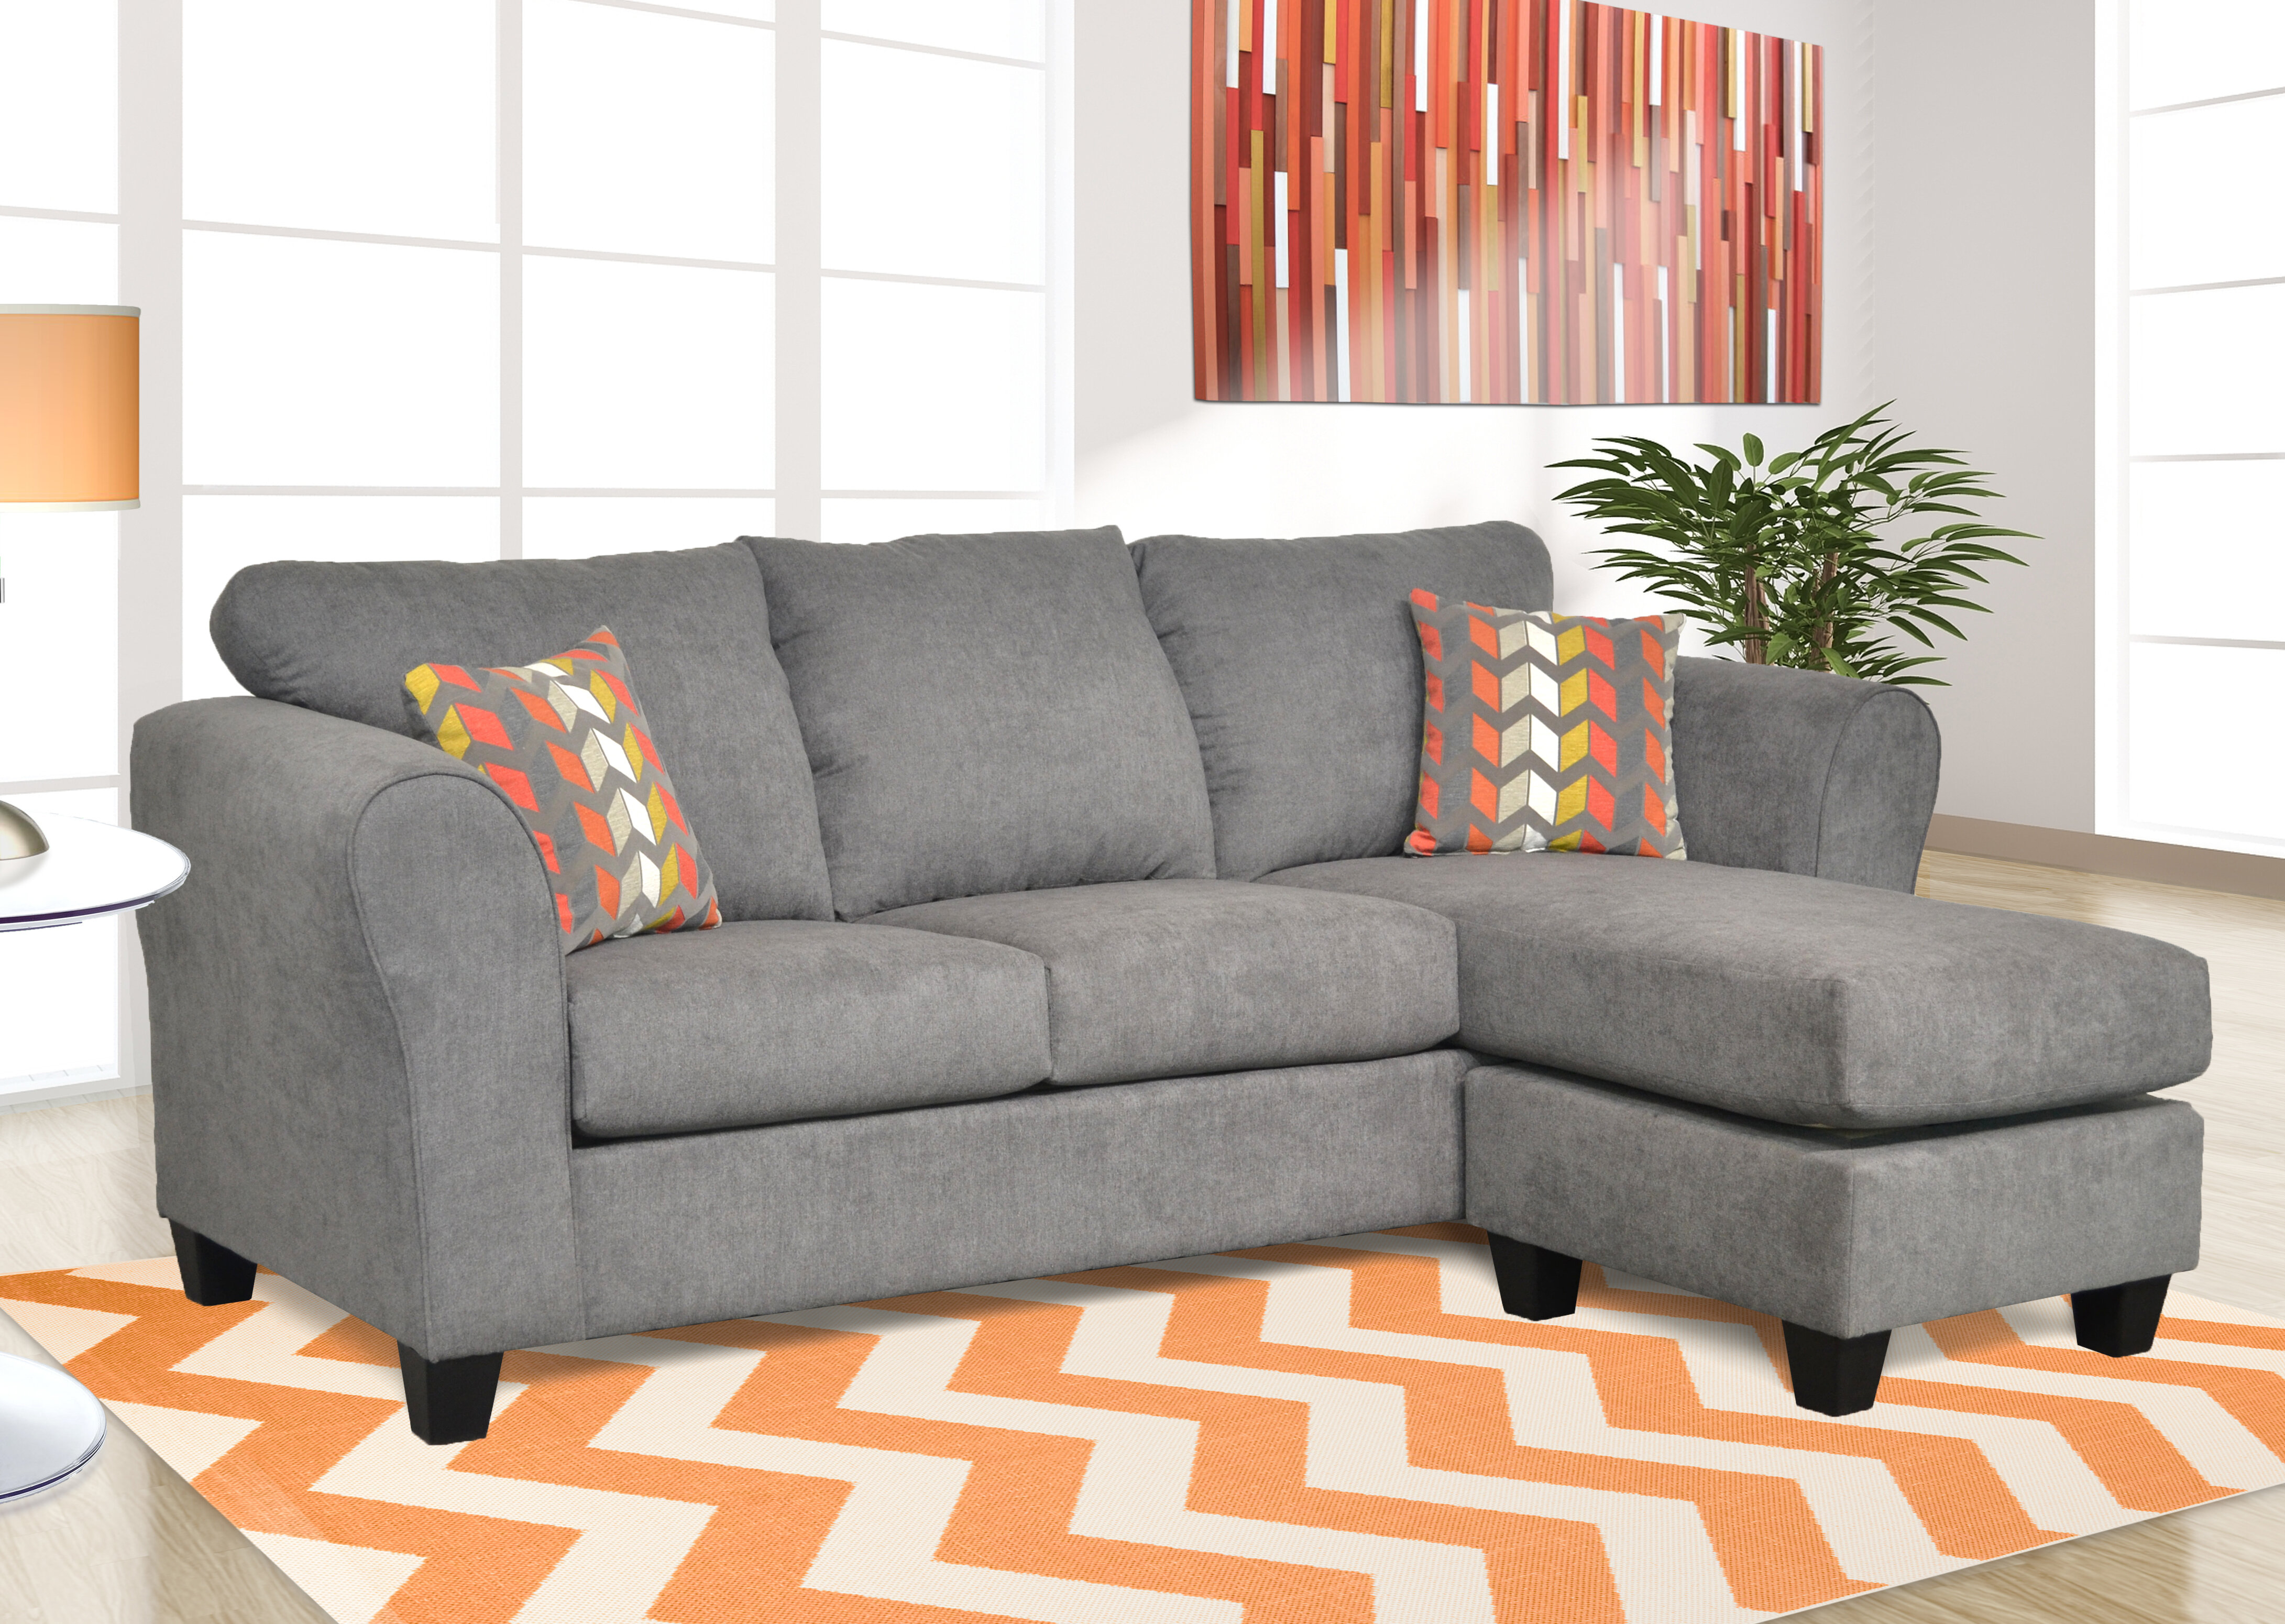 loveseat pdp sleeper main furniture joss serta reviews va richmond upholstery futons cia